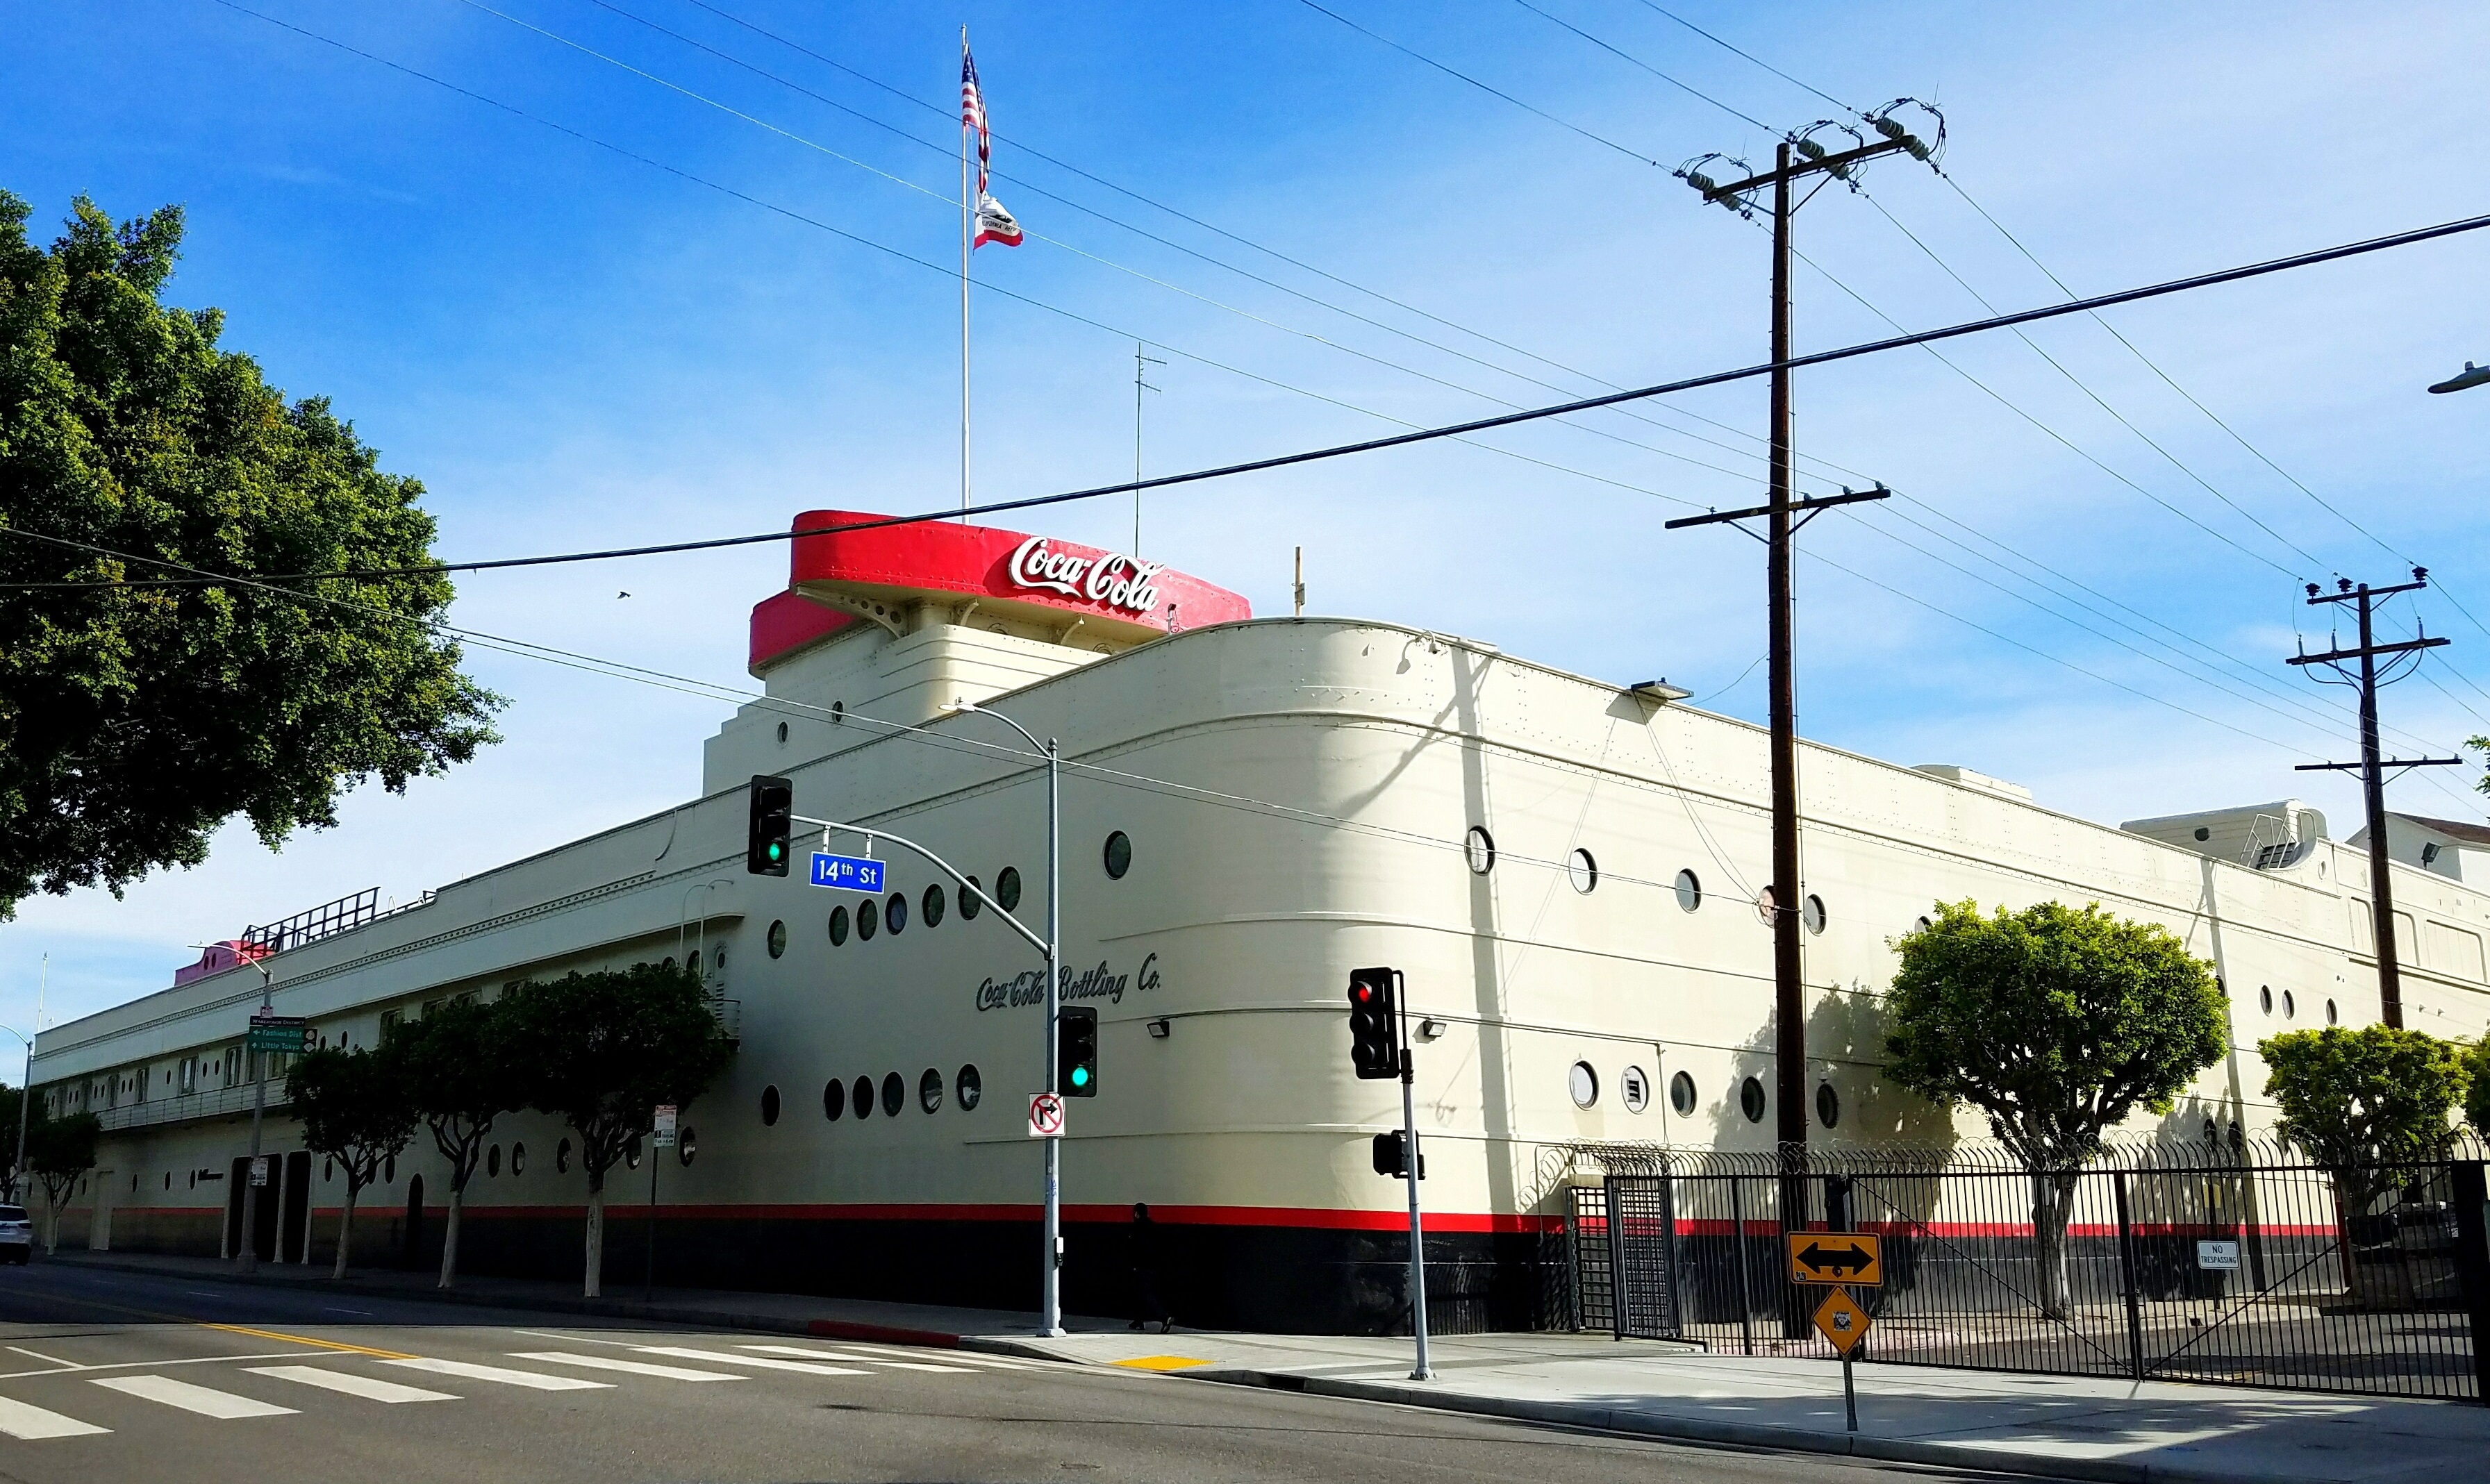 Coca-Cola Building - GWTF Streamline Group Cover Photo March 2021